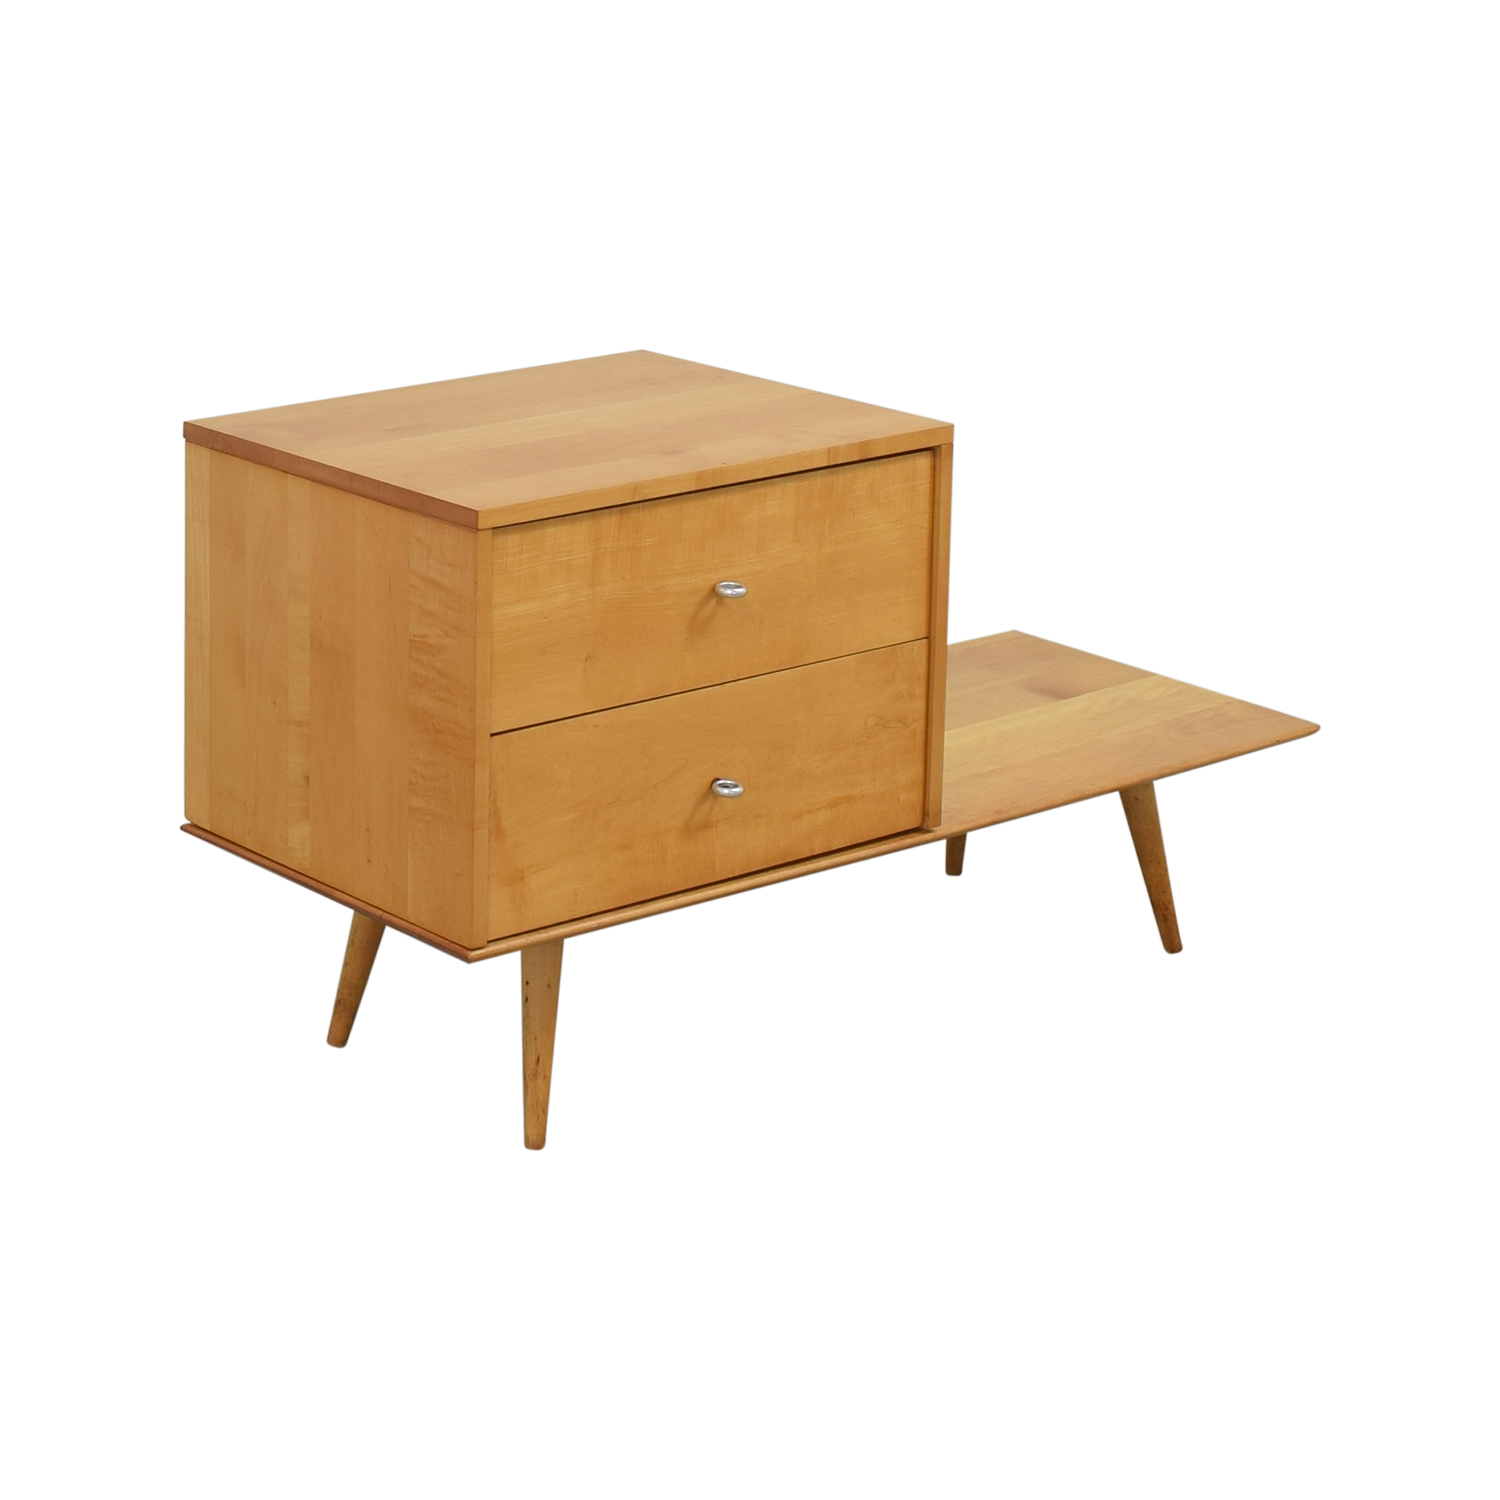 buy Paul McCobb Paul McCobb Planner Group Bench with Cabinet online